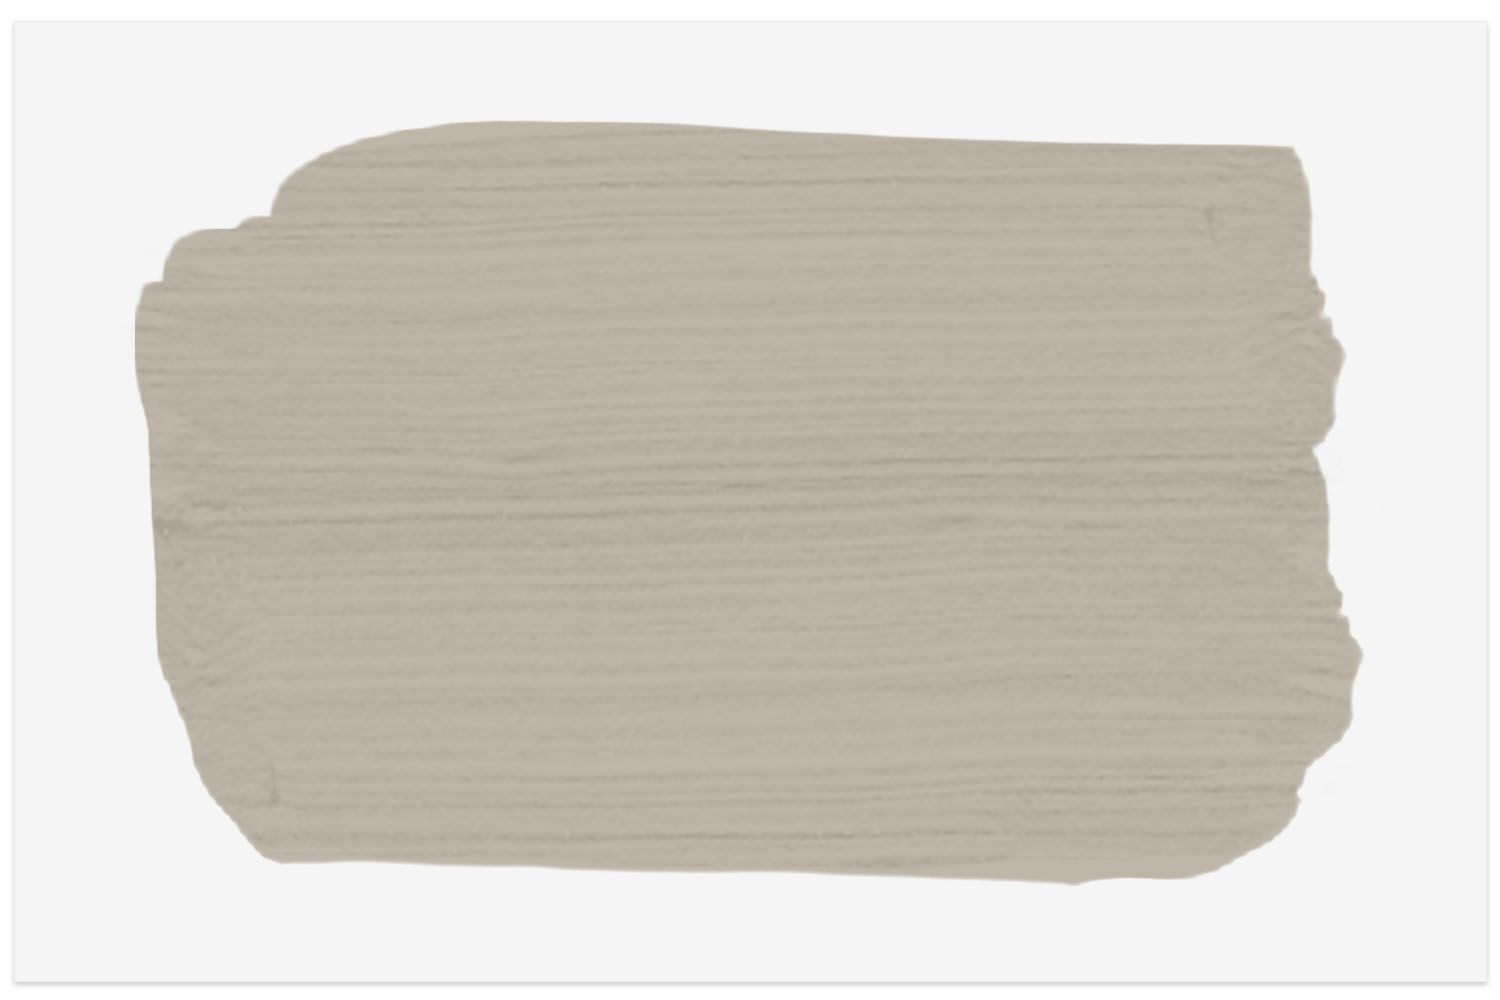 Sherwin Williams Anew Gray paint swatch